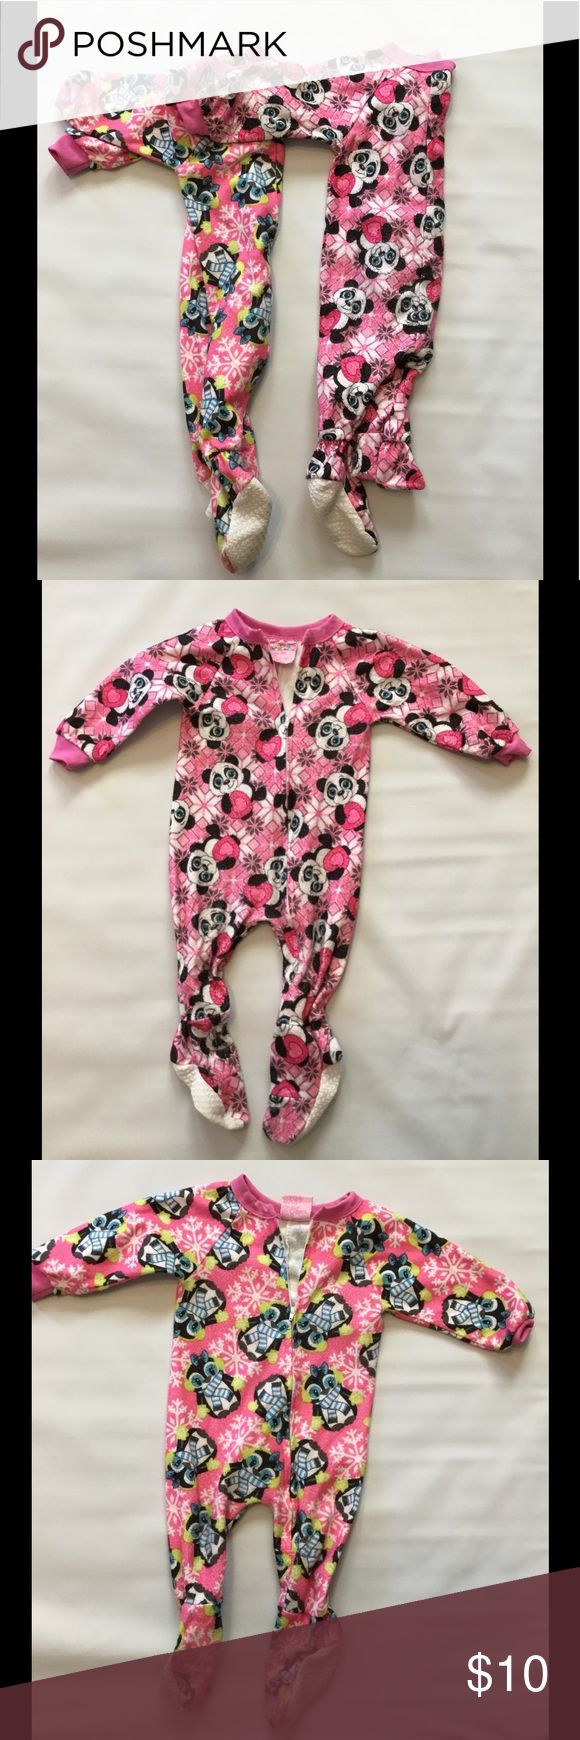 NWOT Bundle of Footies Two sets of footies. Perfect for lounging around during those cold days or when going out. These were never worn.(No pets and no smoking) One Pieces Footies